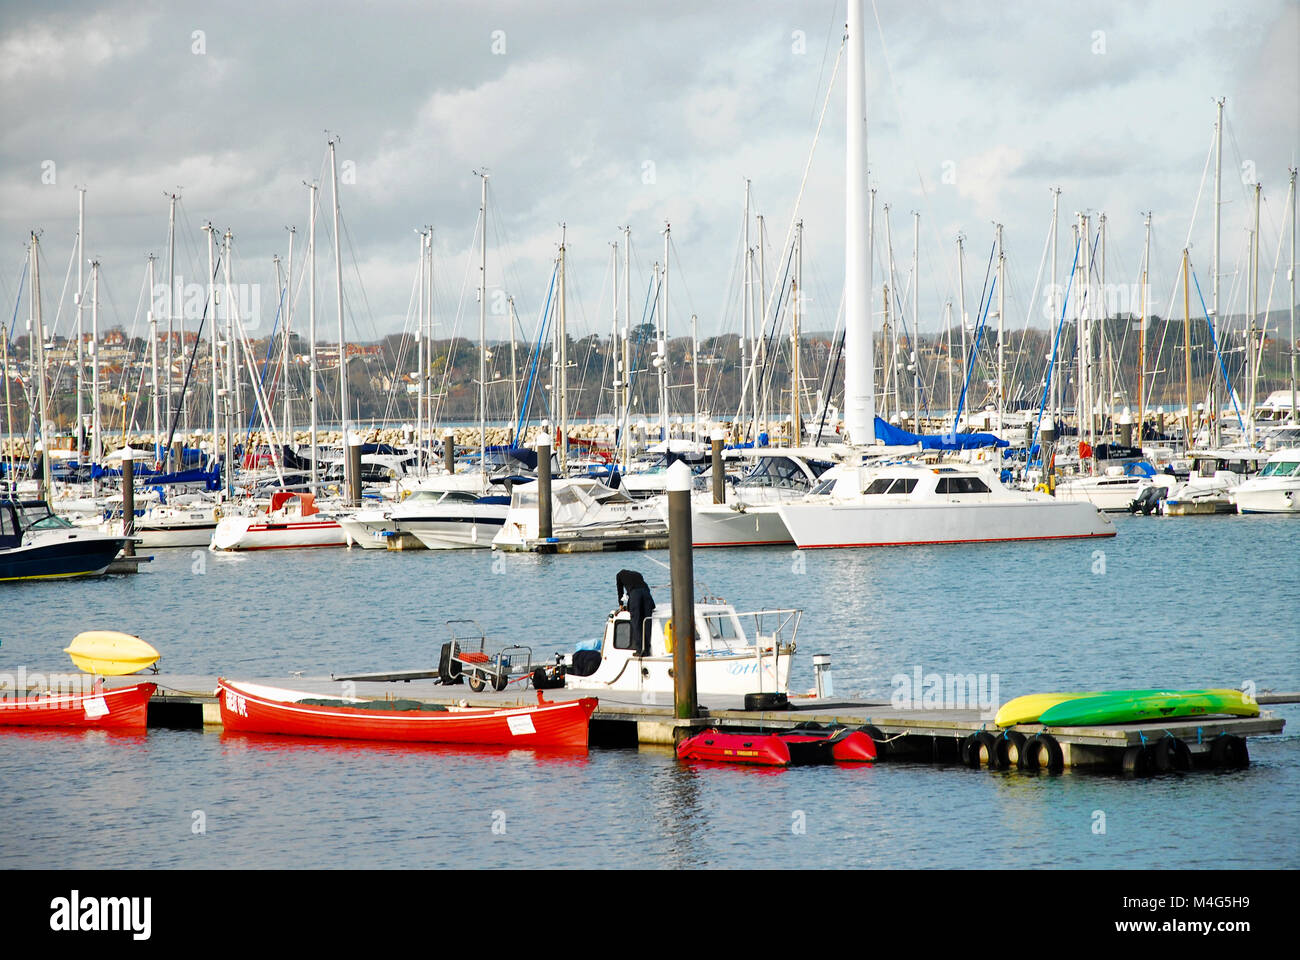 Portland, Dorset. 16th February 2018. People maintain their boats in sunny Portland harbour, witha high of 8 degrees - Stock Image